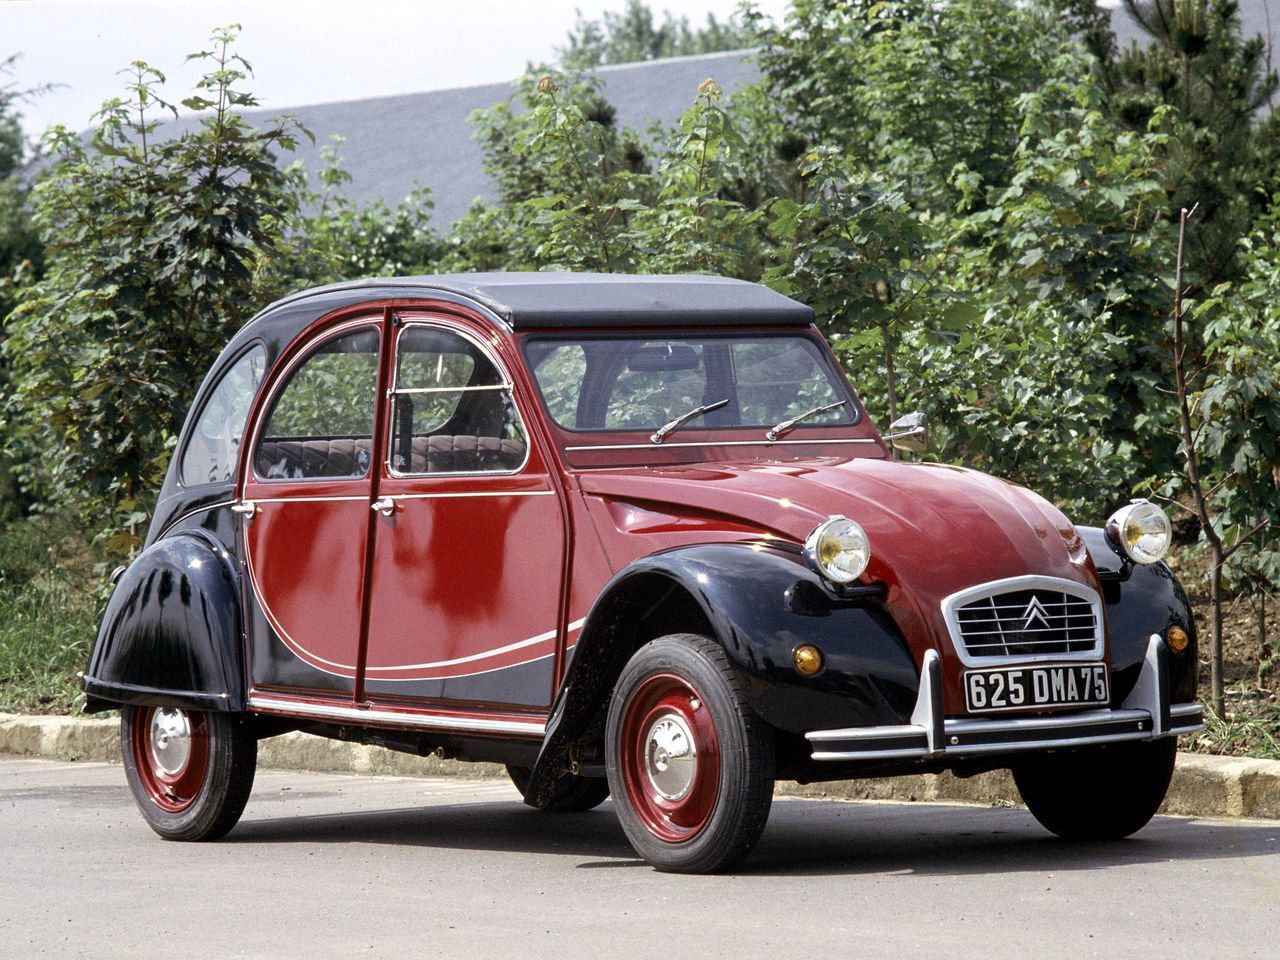 2cv charleston a vendre france